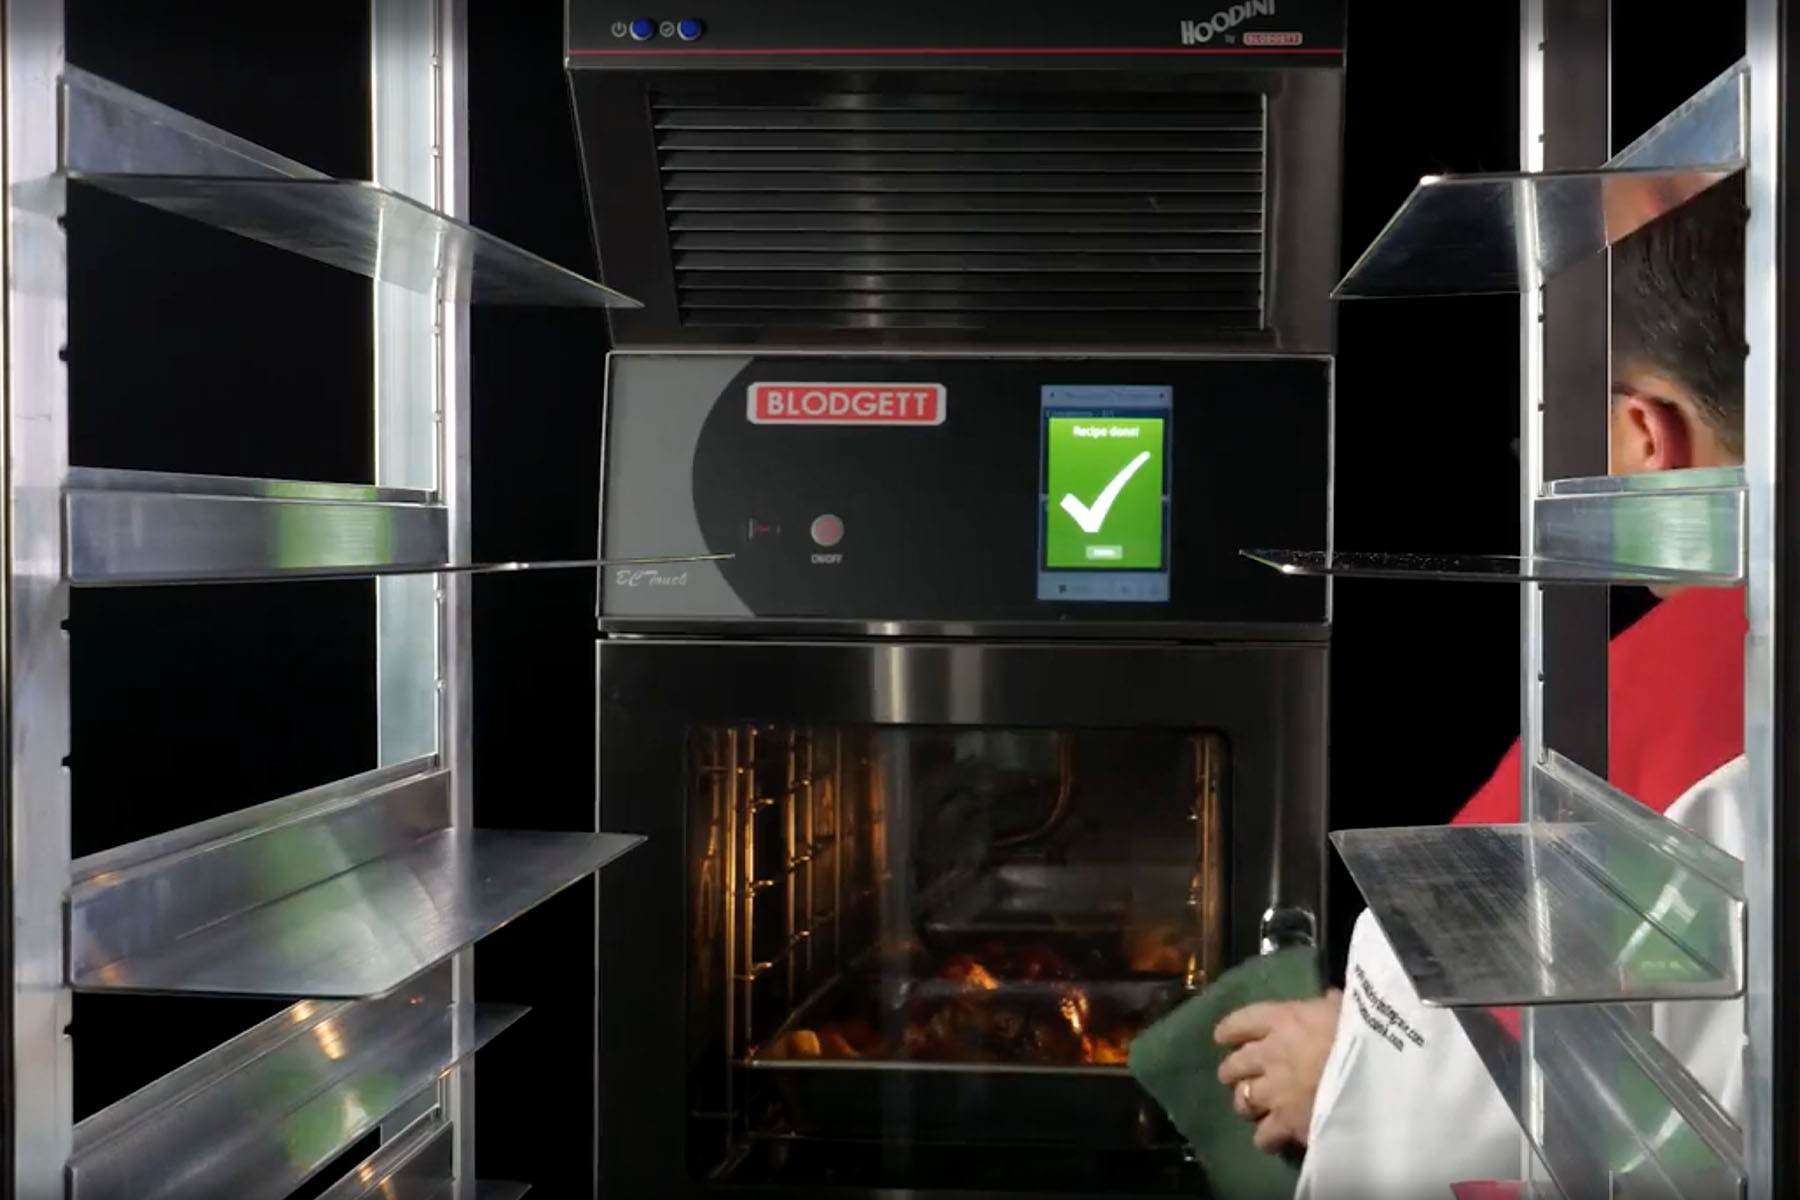 Interior of commercial combi oven with chef opening the oven door